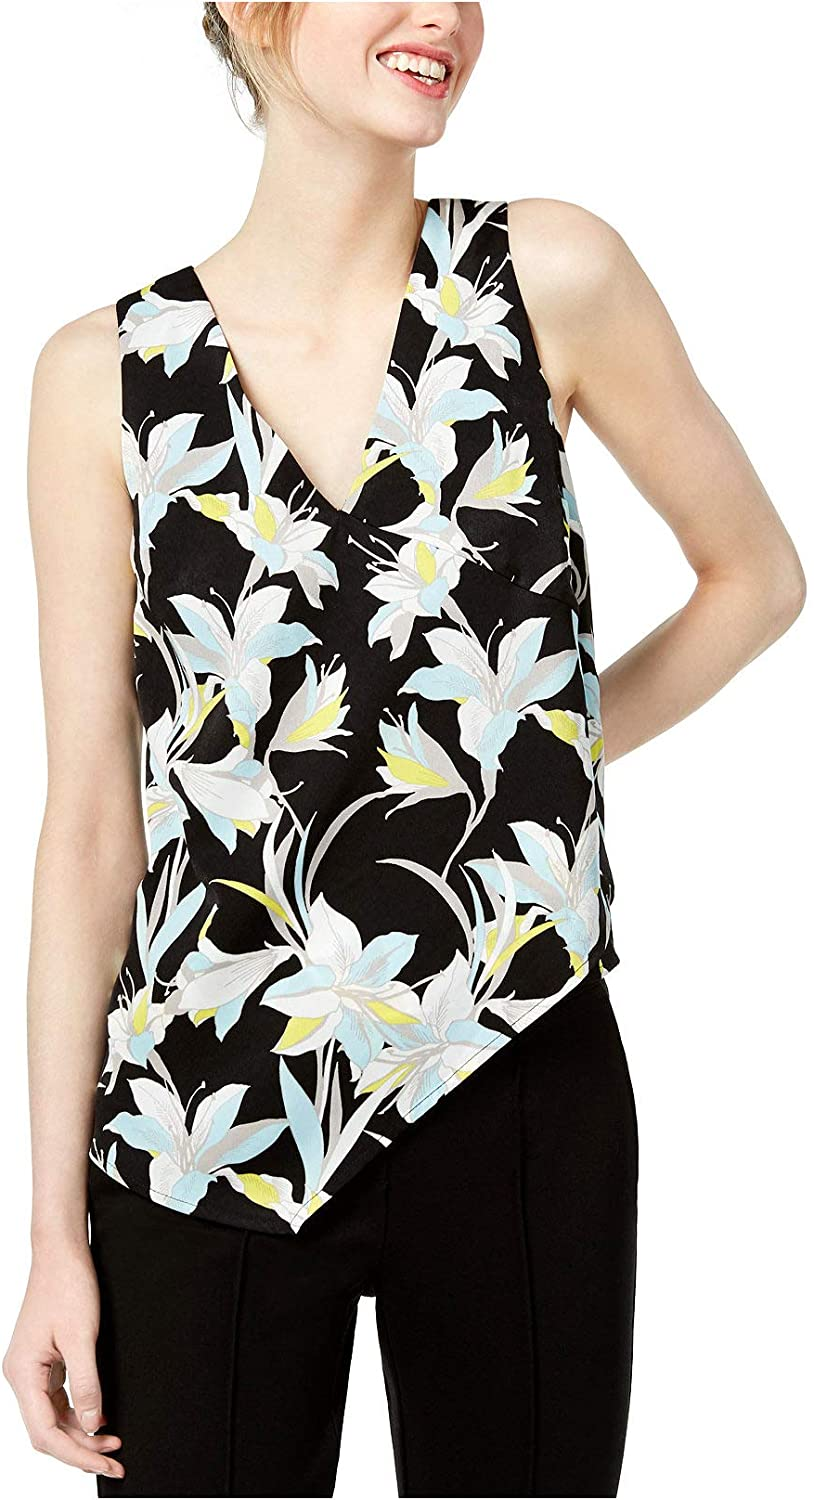 Bar III Women's Mod Lillies Asymmetrical V-Neck Sleeveless Top, Multi (Medium)